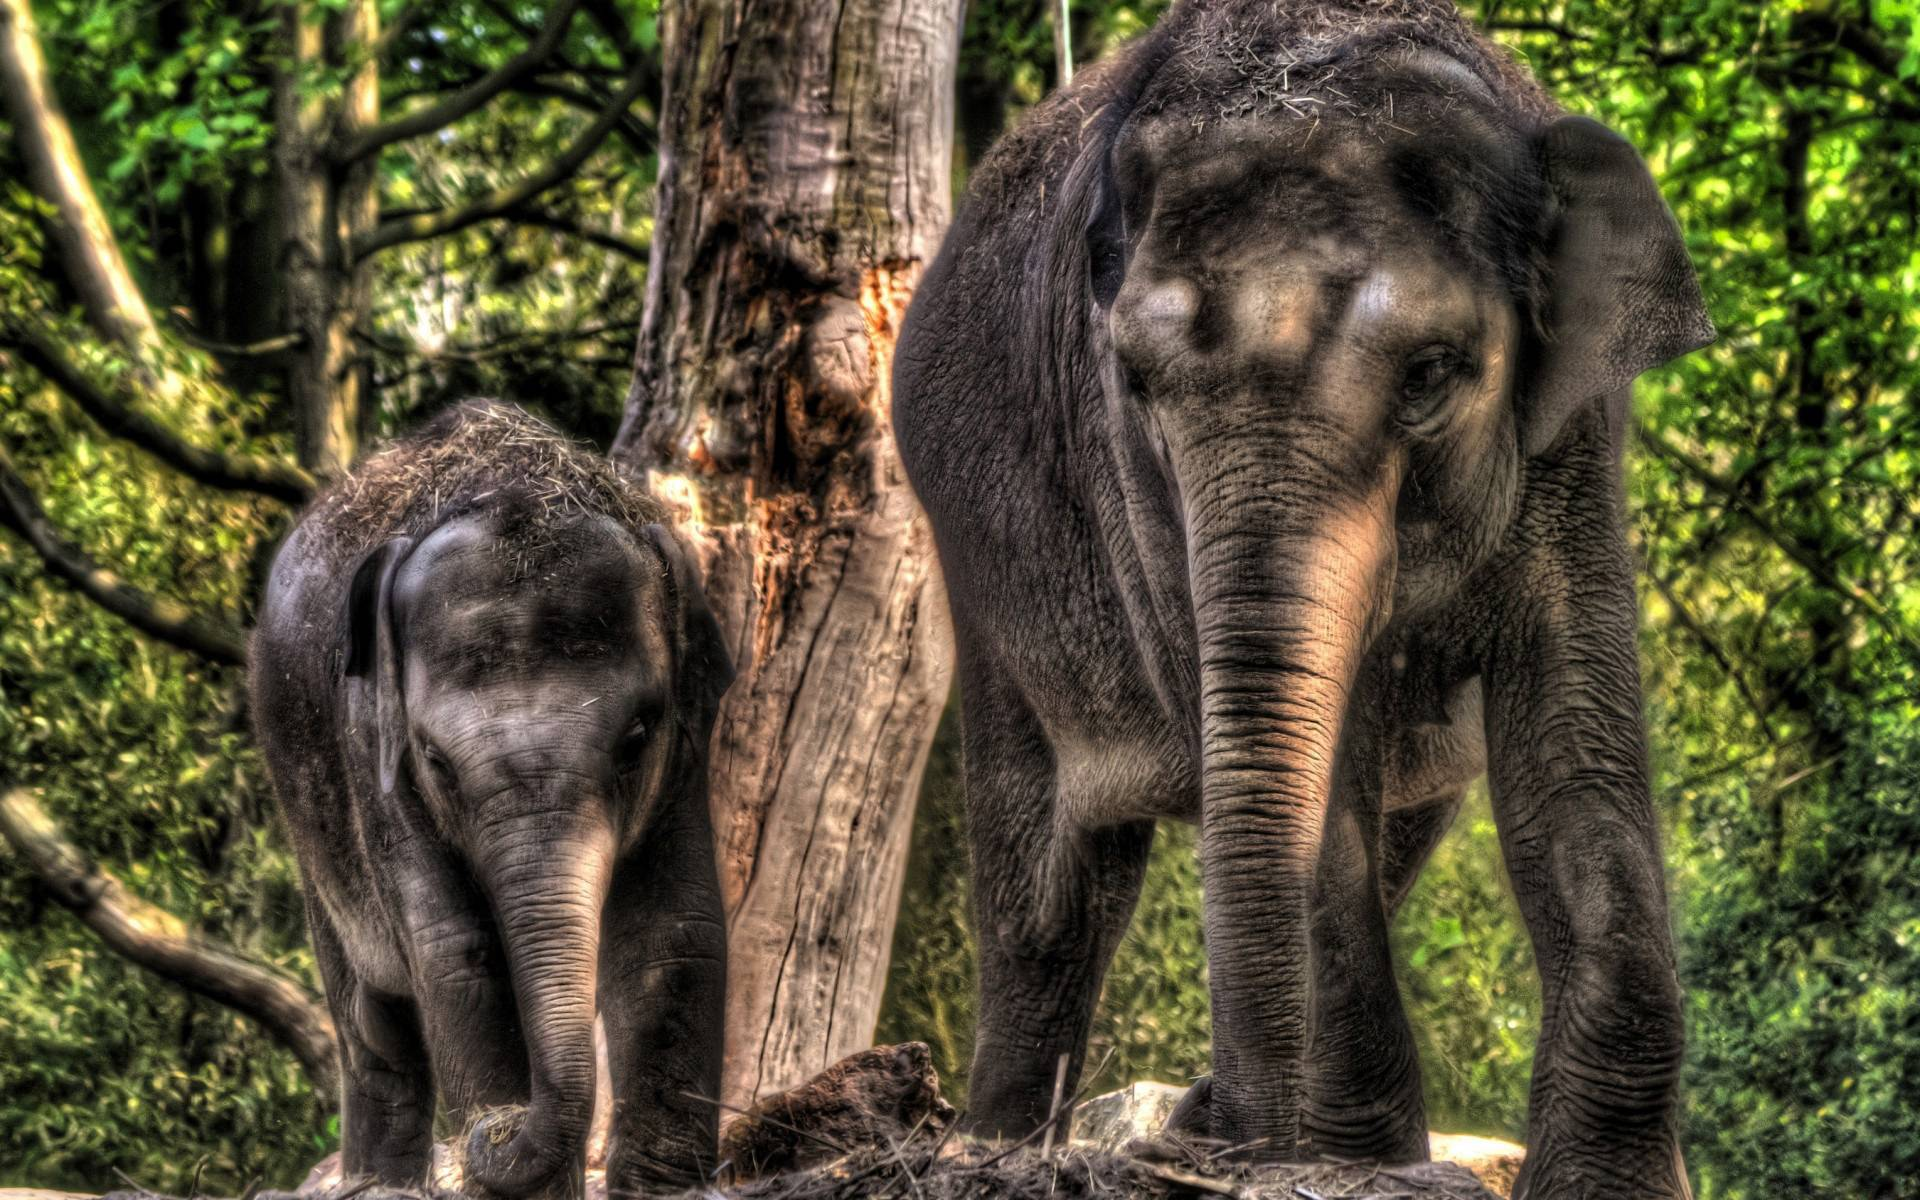 Wallpaper download elephant - Wallpapers For Baby Elephant Wallpaper